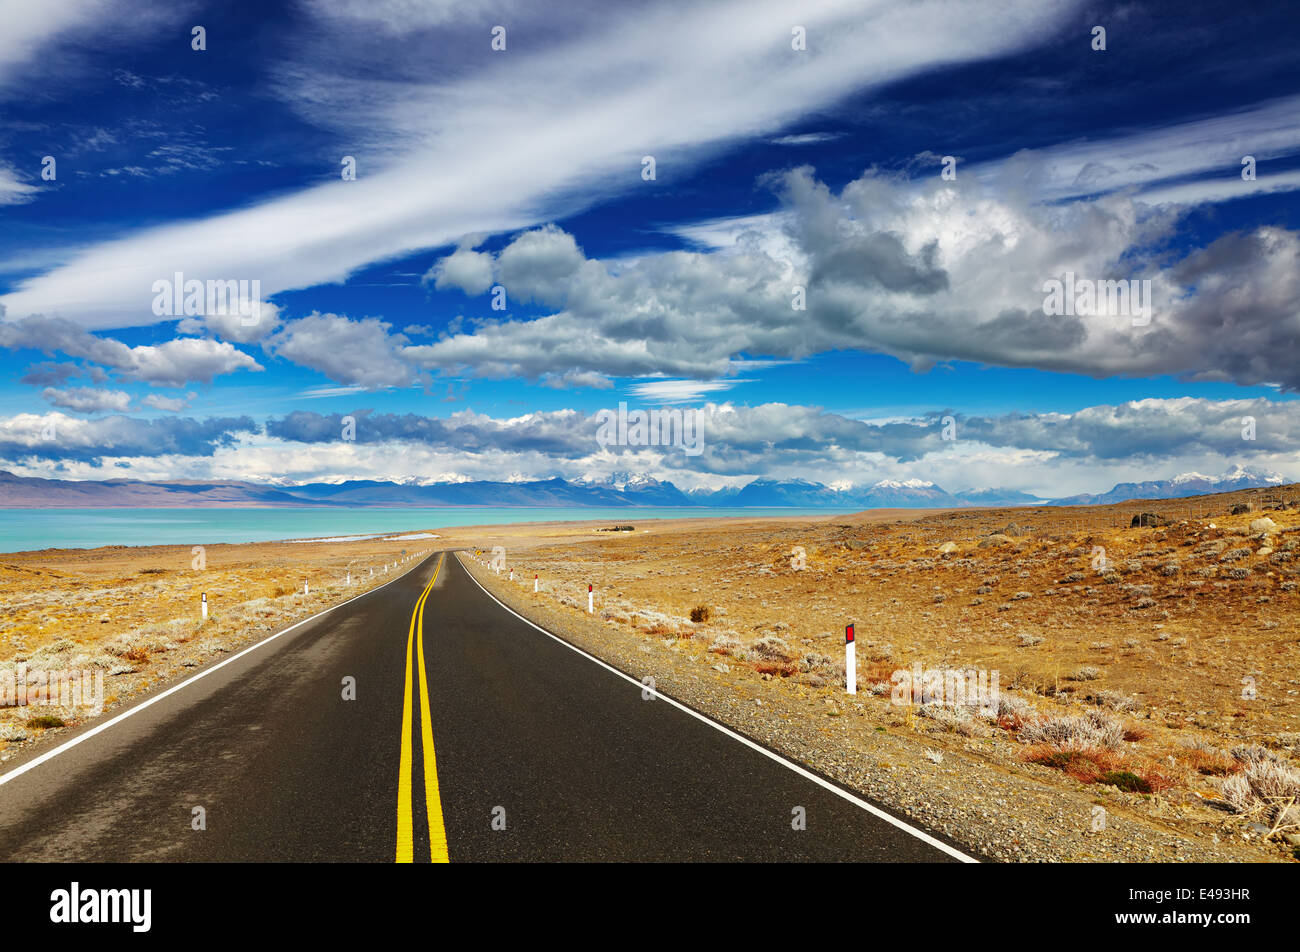 Patagonian landscape with road and Viedma Lake, Argentina - Stock Image